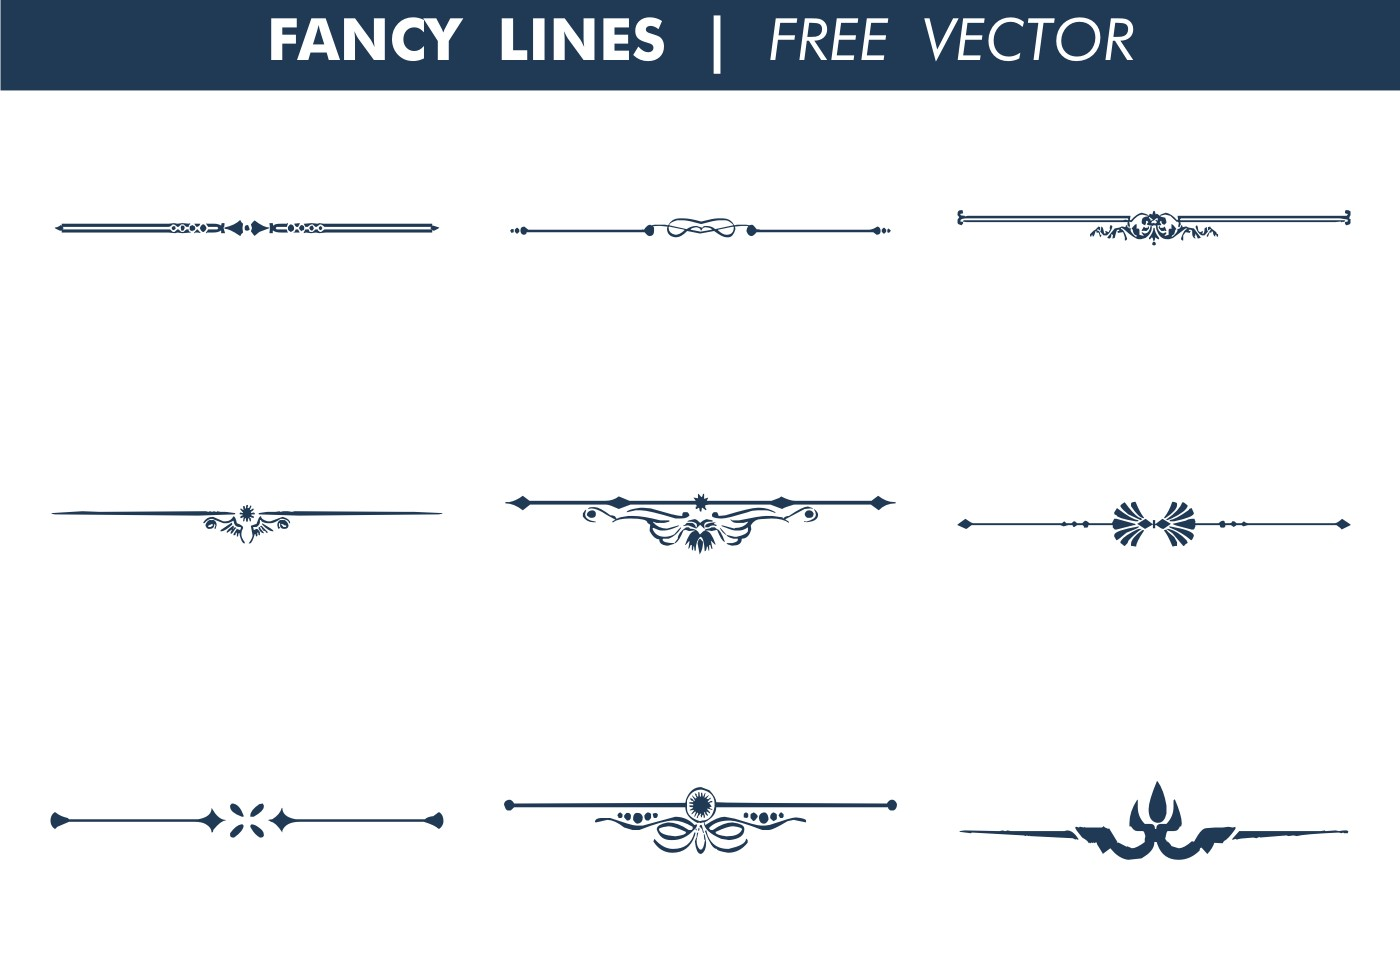 1400x980 Decorative Fancy Lines Free Vector Line 3